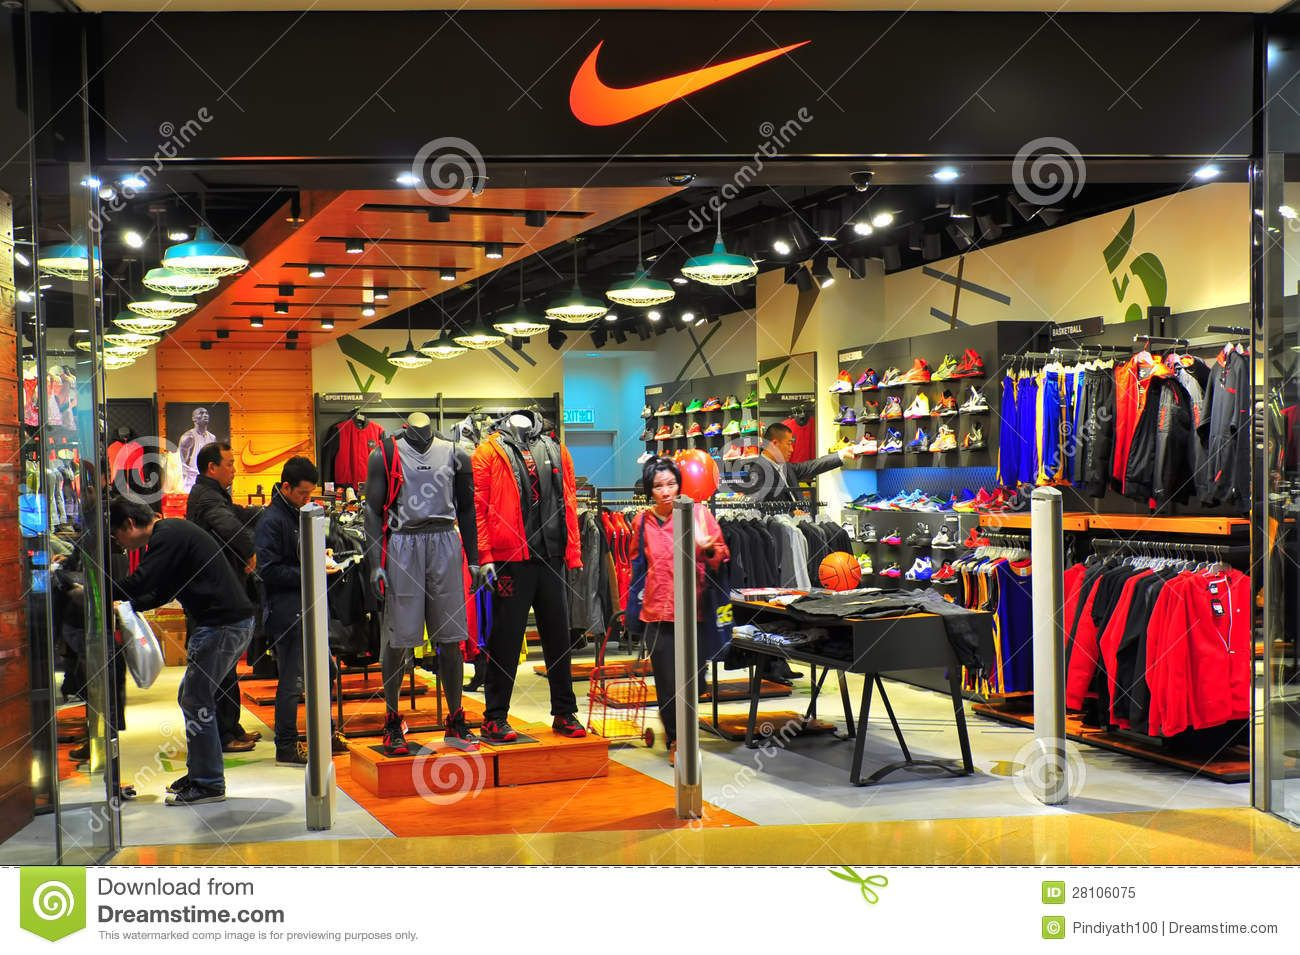 Nike clothing online store